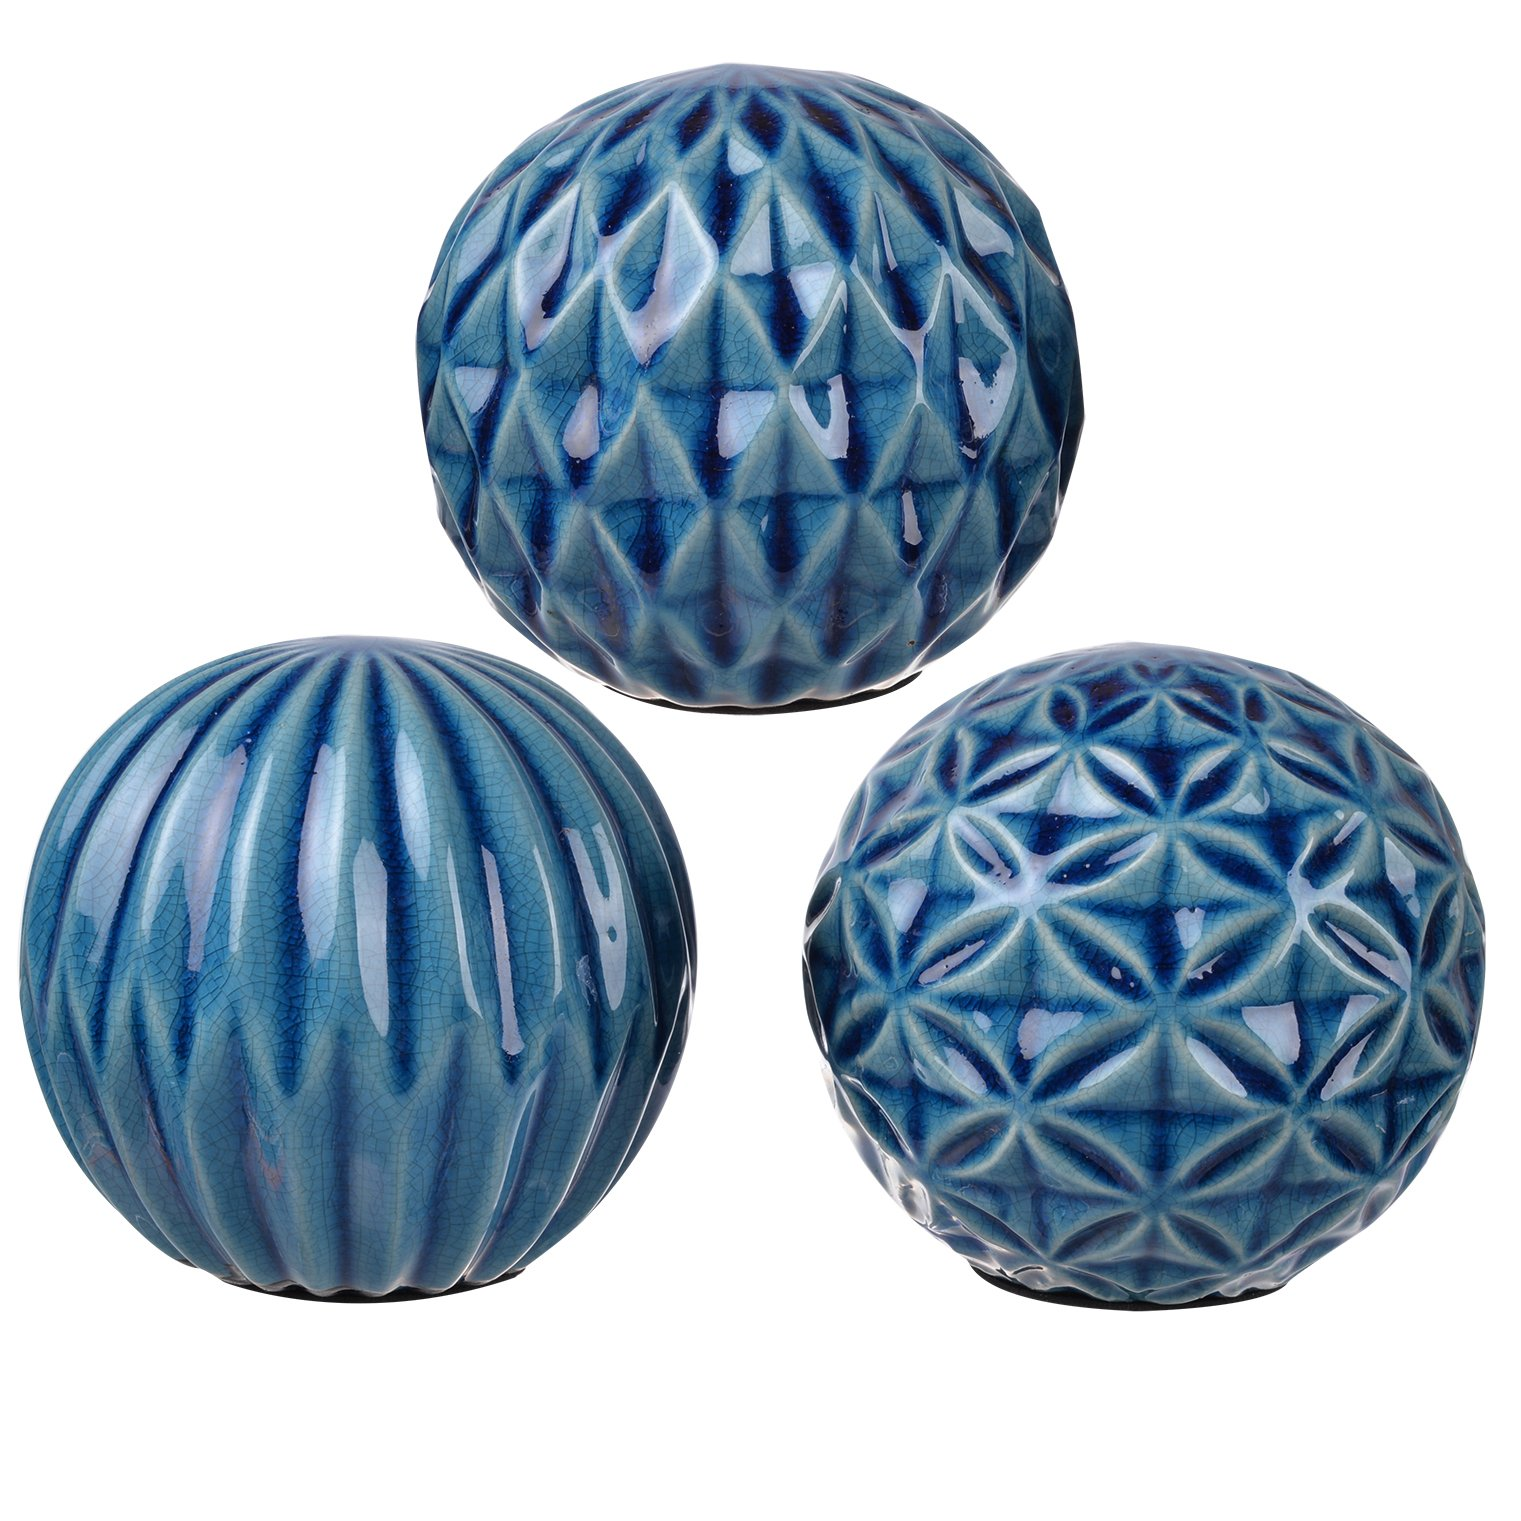 A&B Home 1157 Marbleized Ball Accents, Blue Patterned, Set of 3, 4 by 4-Inch by A&B Home